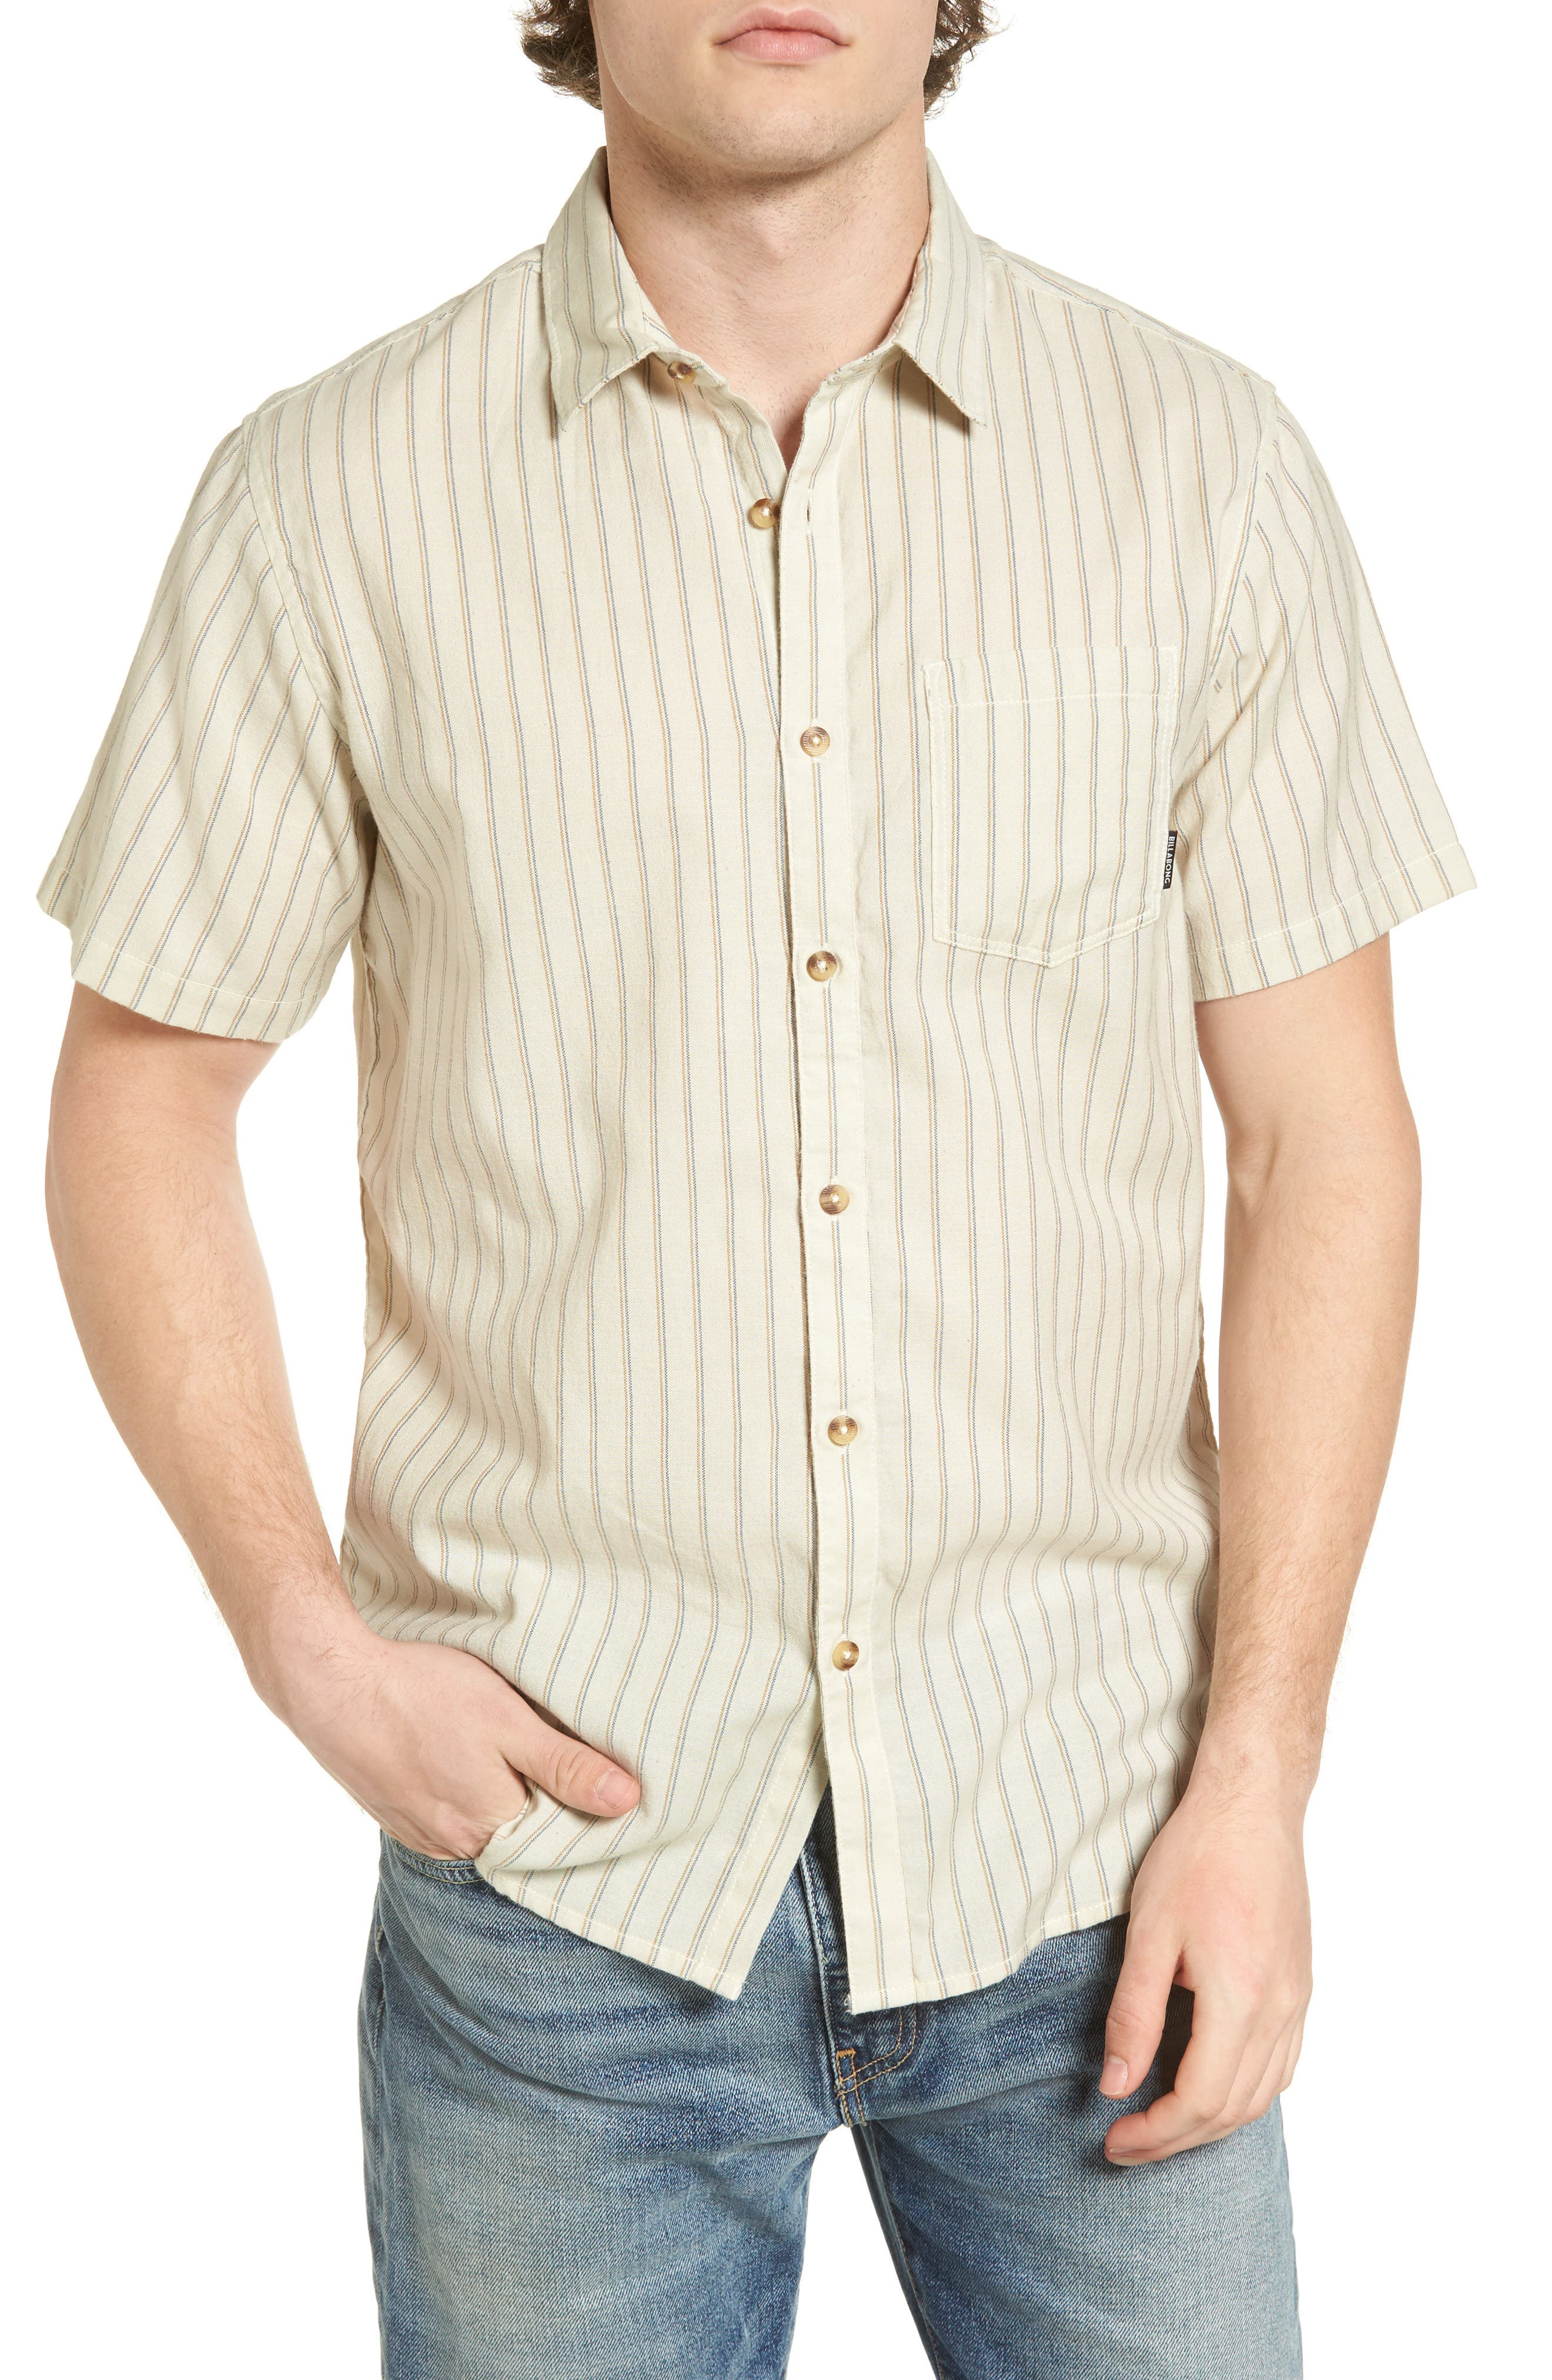 Kelso Tailored Fit Stripe Shirt,                             Main thumbnail 1, color,                             Stone